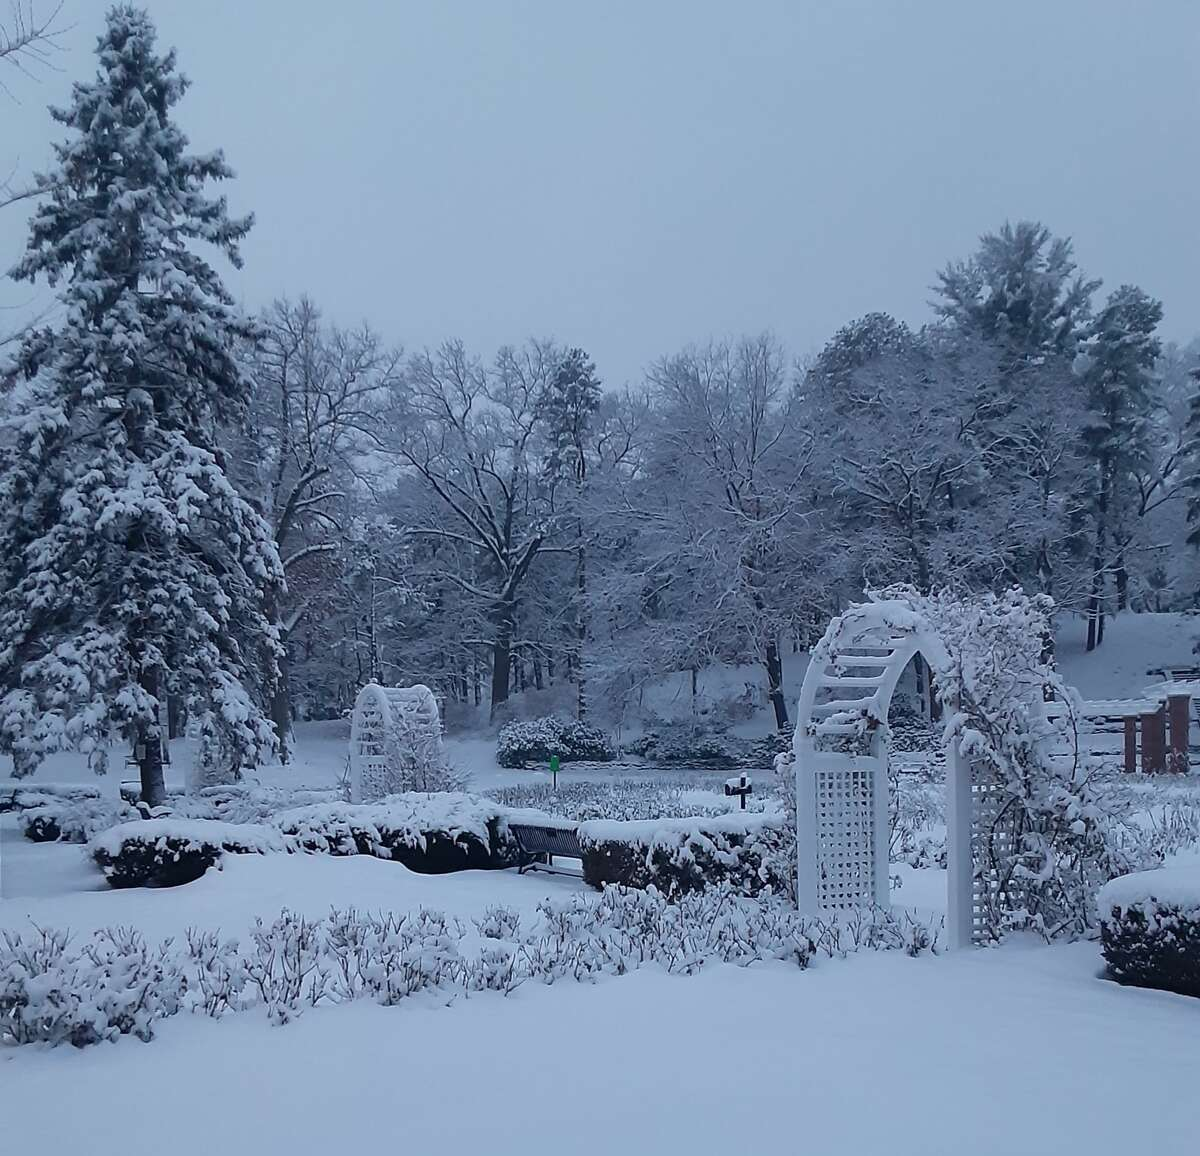 This was taken in early January. Central Park Rose Garden, Schenectady Rob Lang